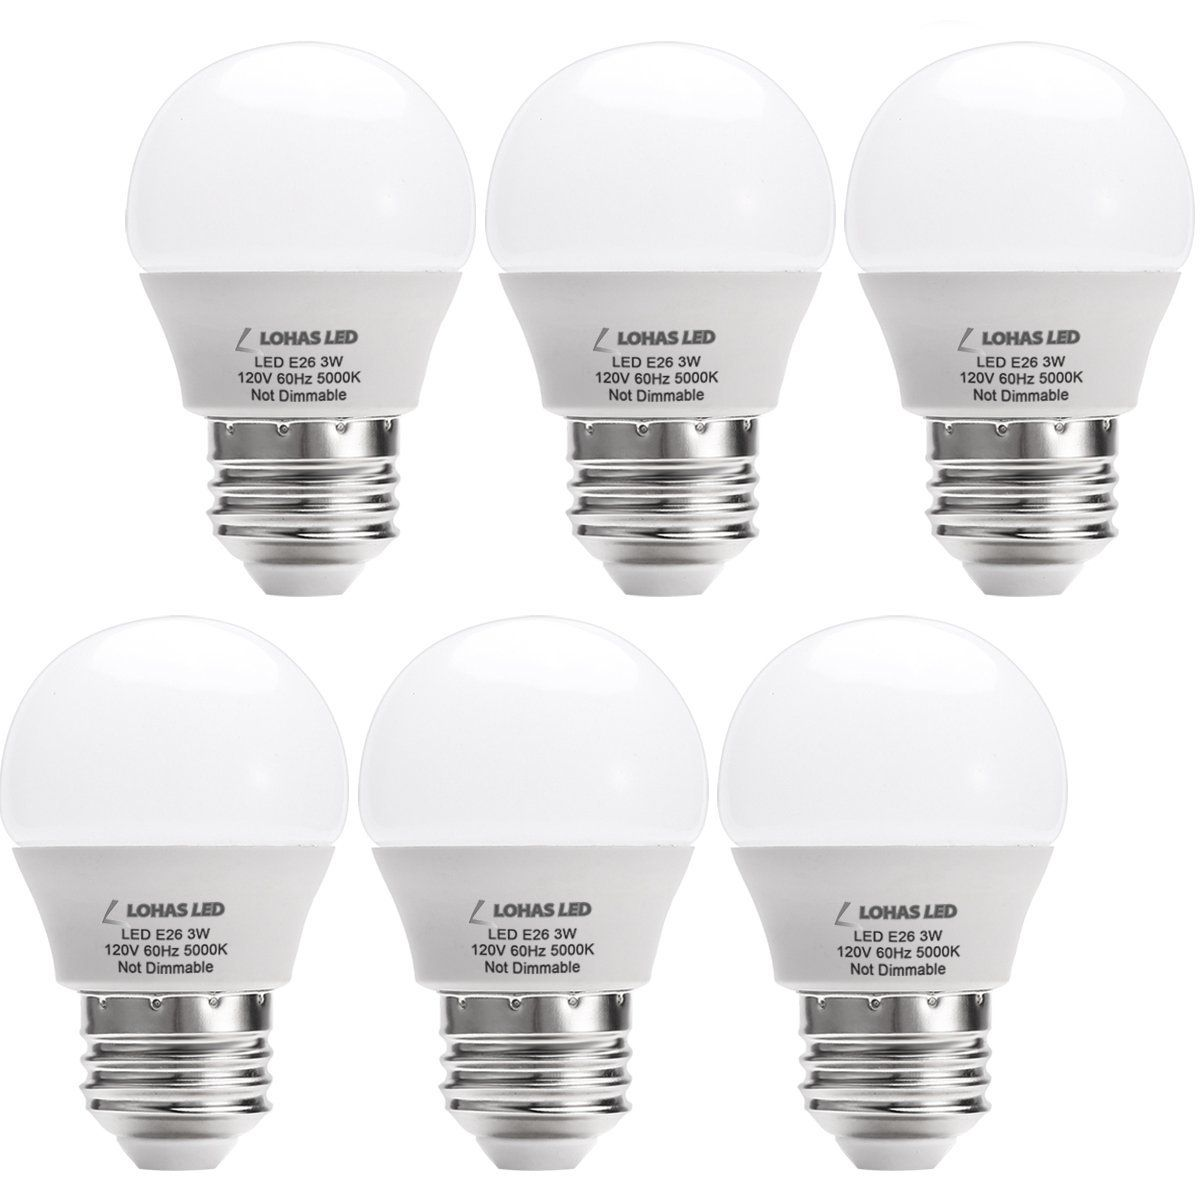 Lohas Led G14 Light Bulb 3w Daylight White 5000k Led Energy Saving Light Bulbs 25 Watt Equivalent Led Lights For Home E26 Medium Screw Base 6 Pack Https